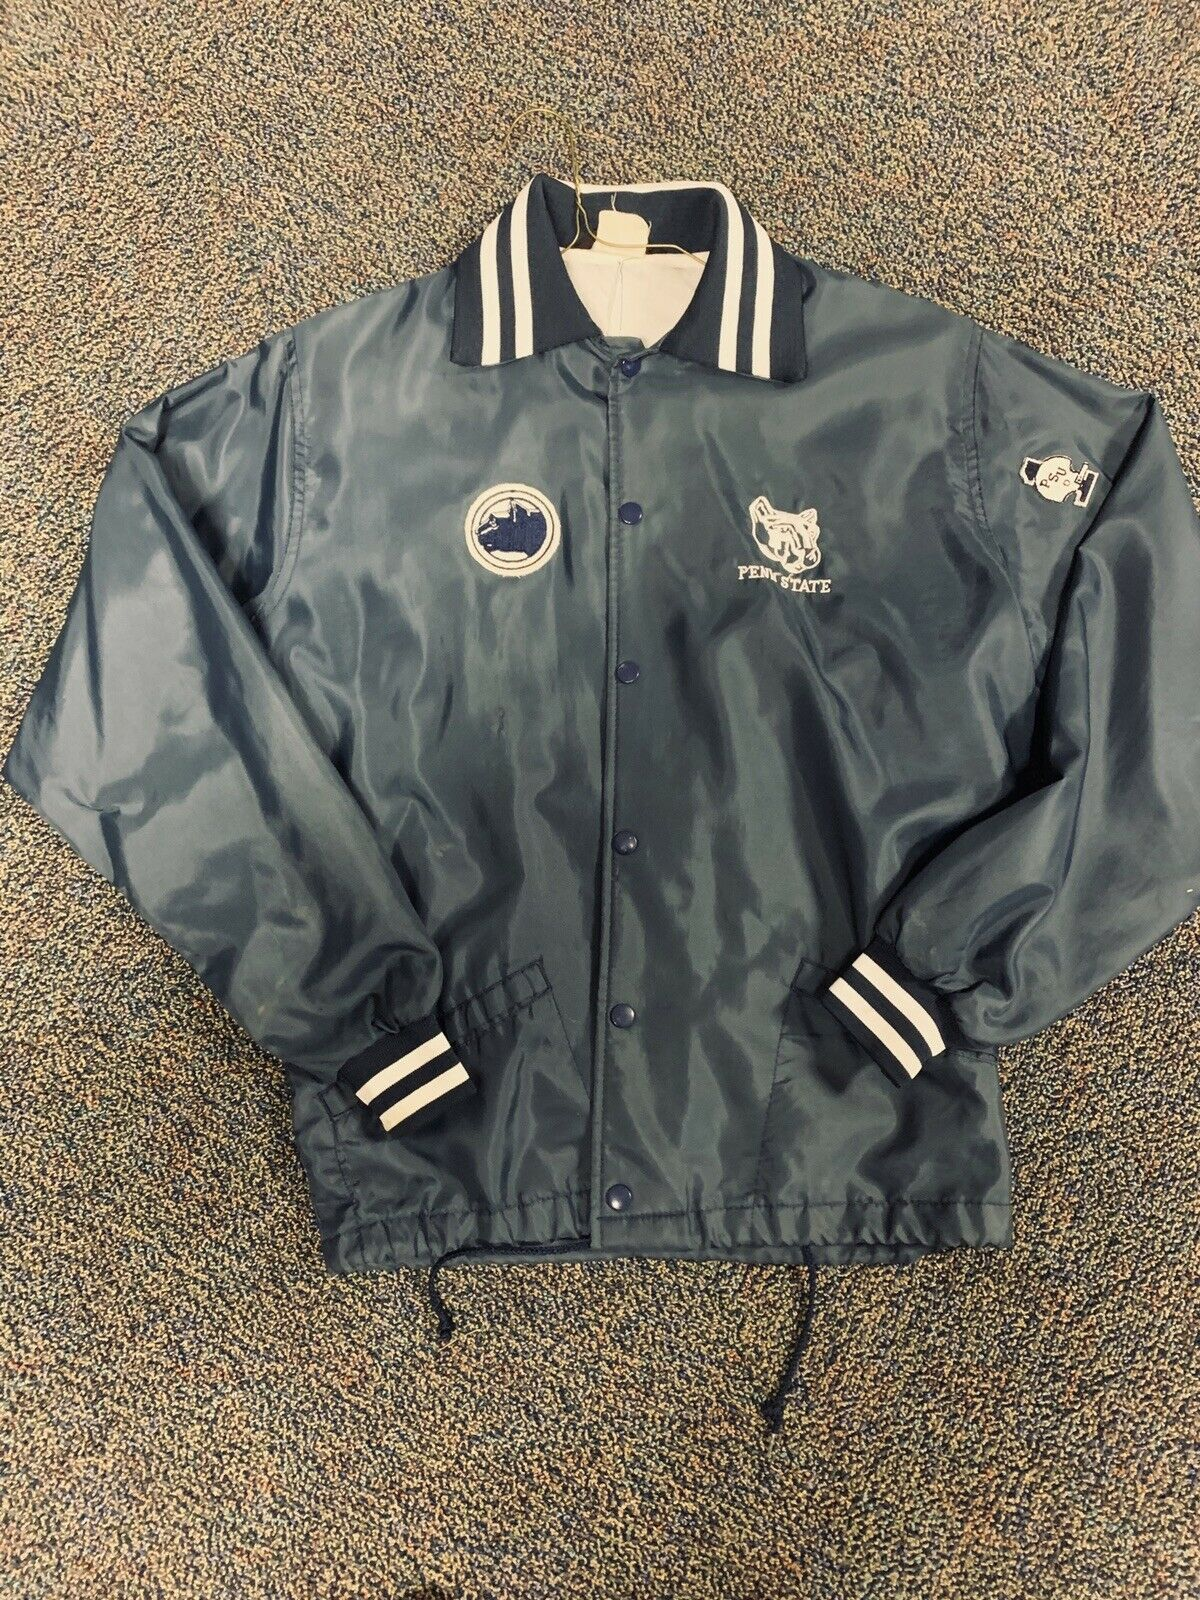 Penn State Nittany Lions VIintage 1982 Coaching Snap Jacket